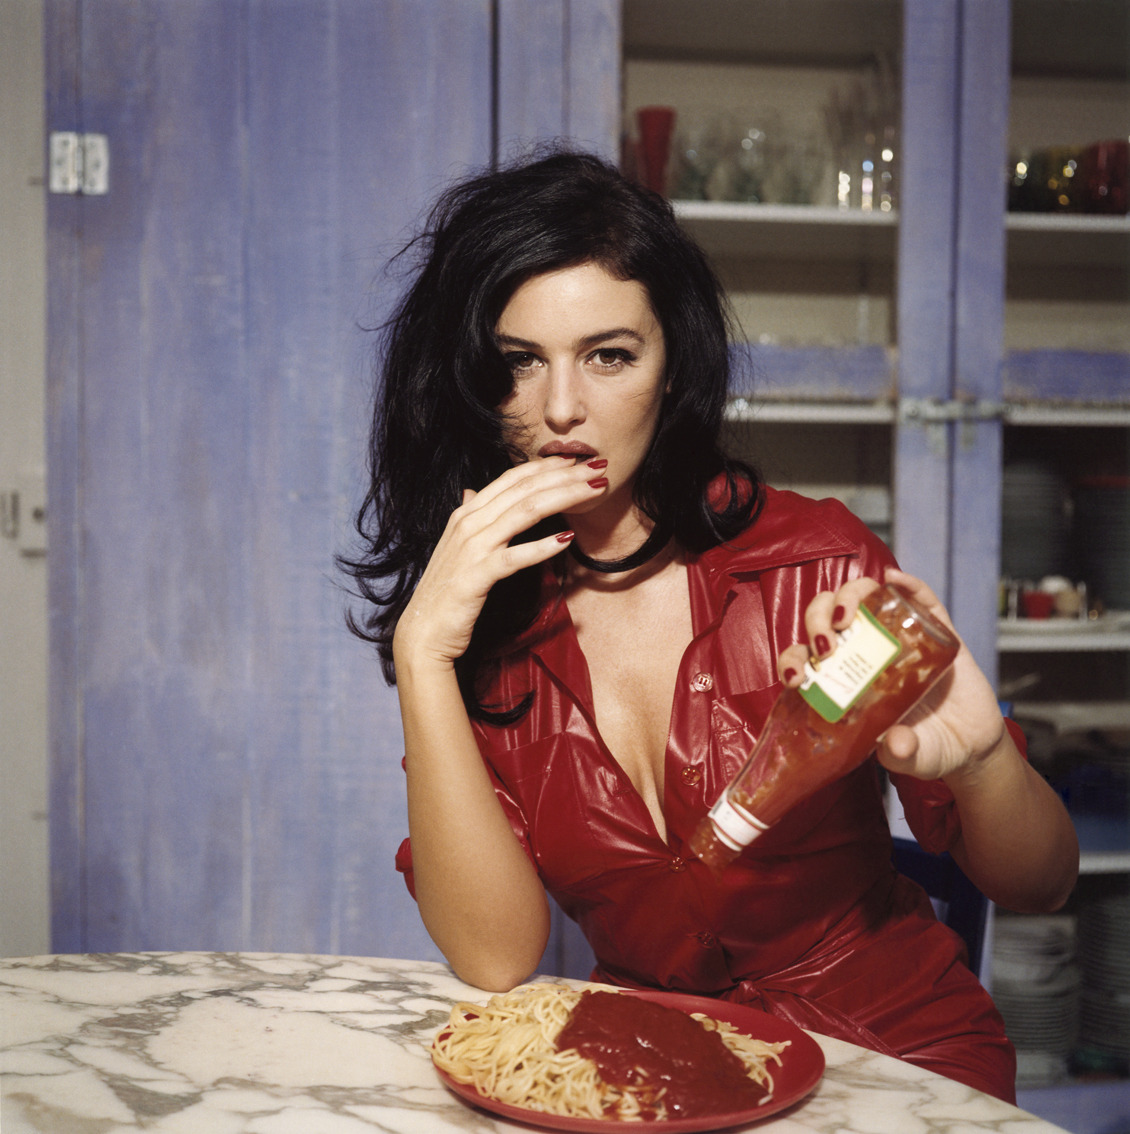 Monica Bellucci, por Bettina Rheims, 1995